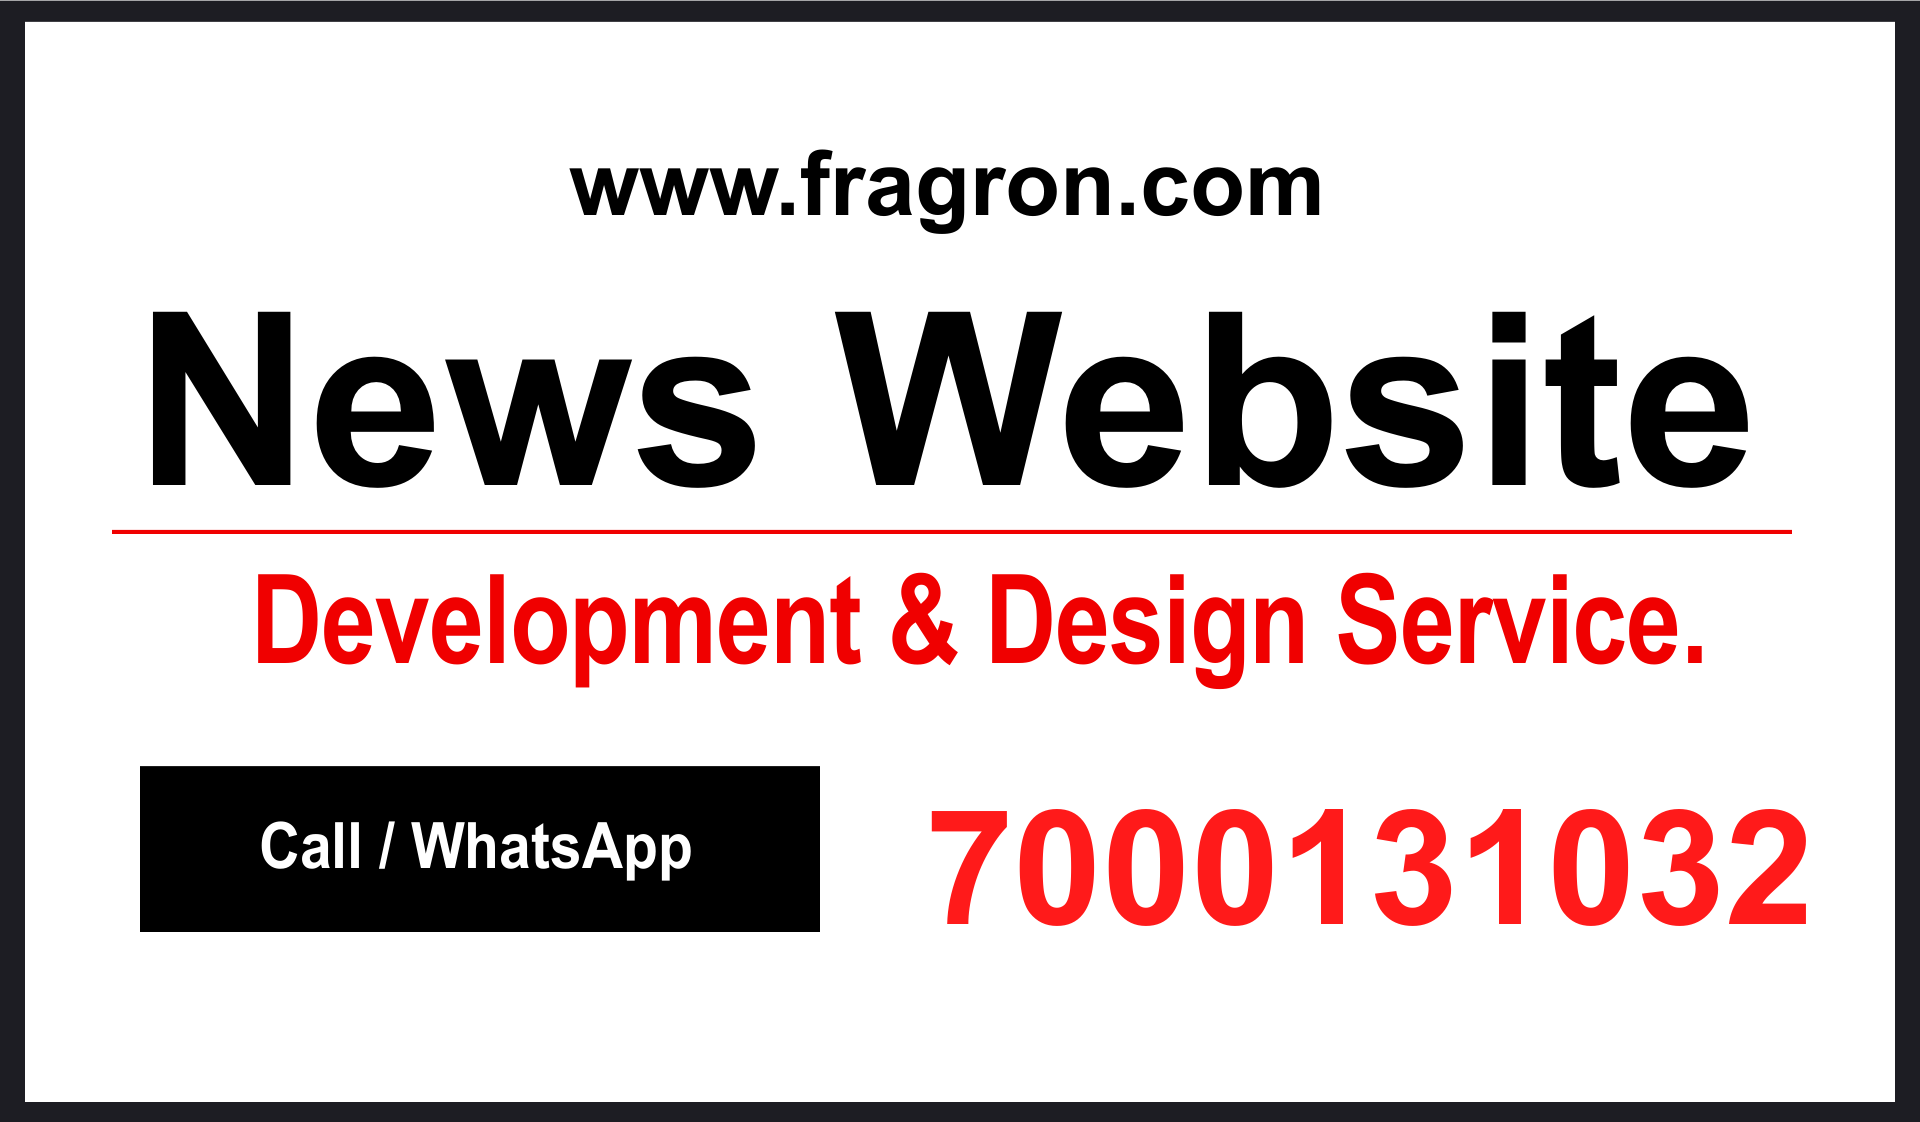 News Website Development and Design service